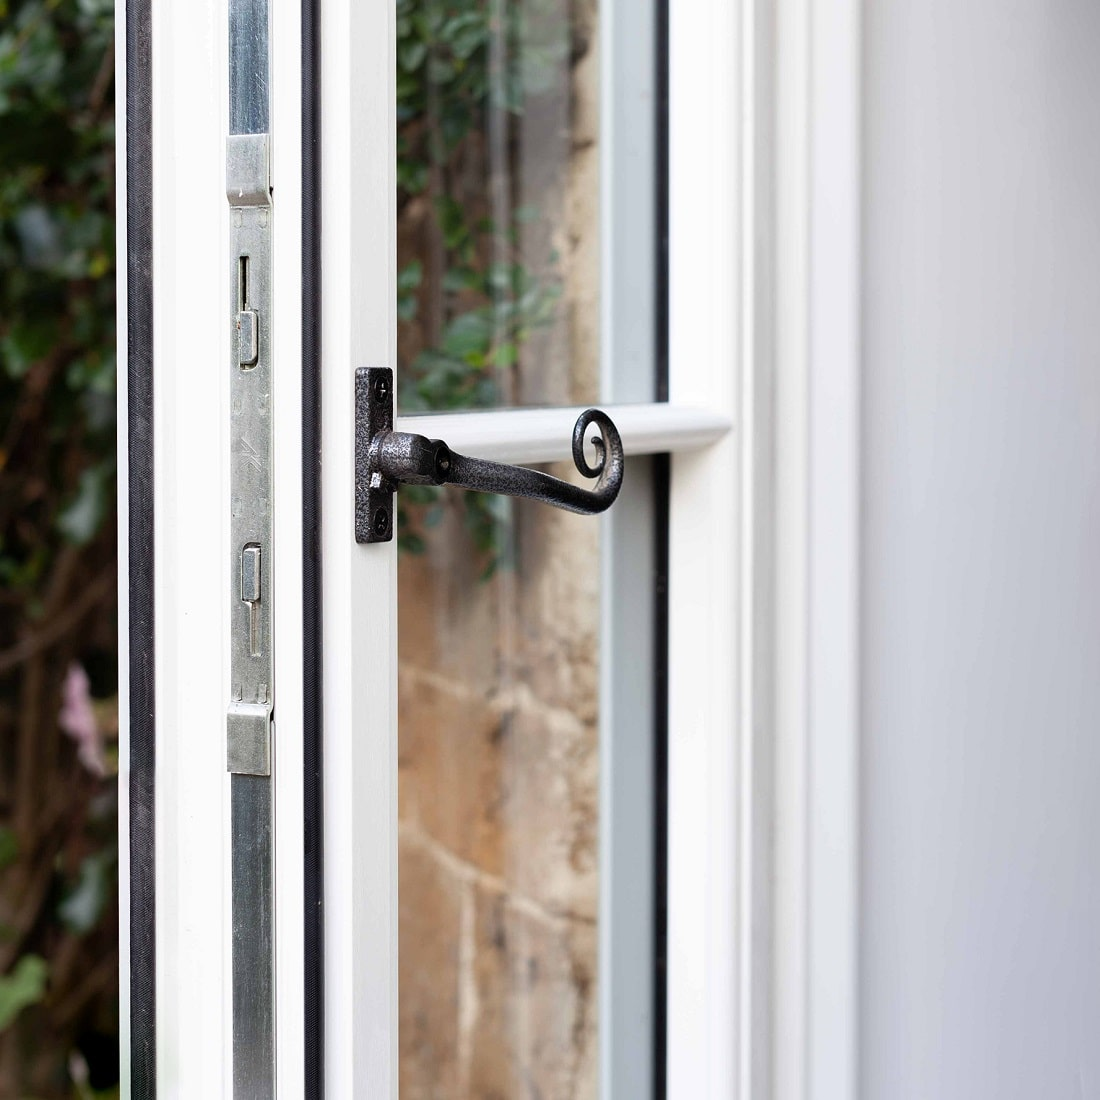 Locking system with iron handle on R9 windows installed in heratage building in Swindon.